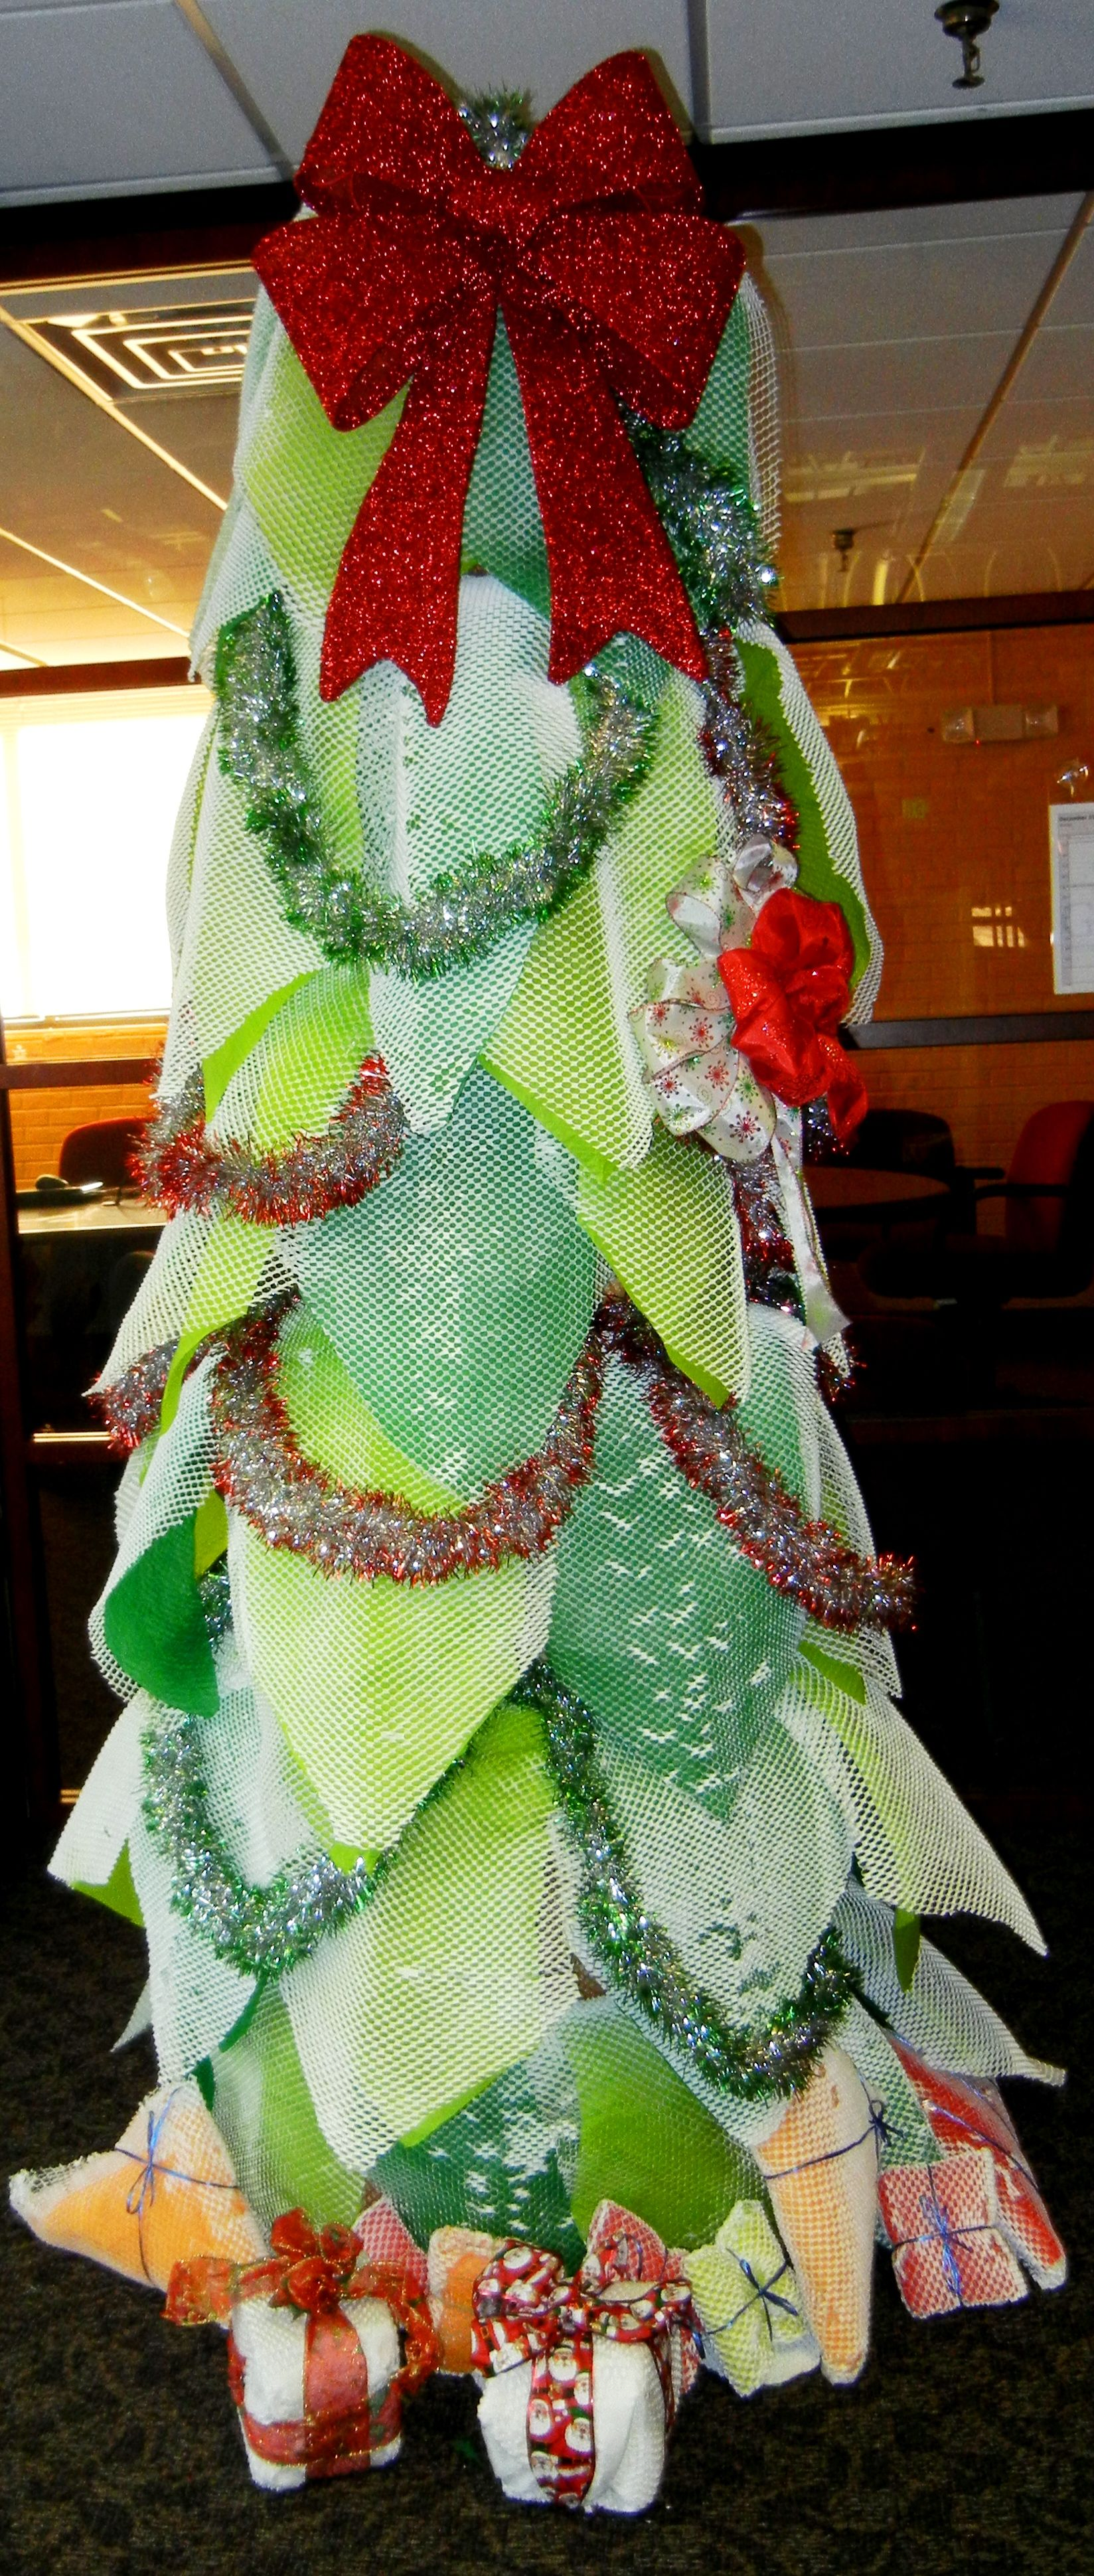 Our Geami Christmas tree! Oh GreenWrapped tree, oh GreenWrapped tree, your branches are so eco ...